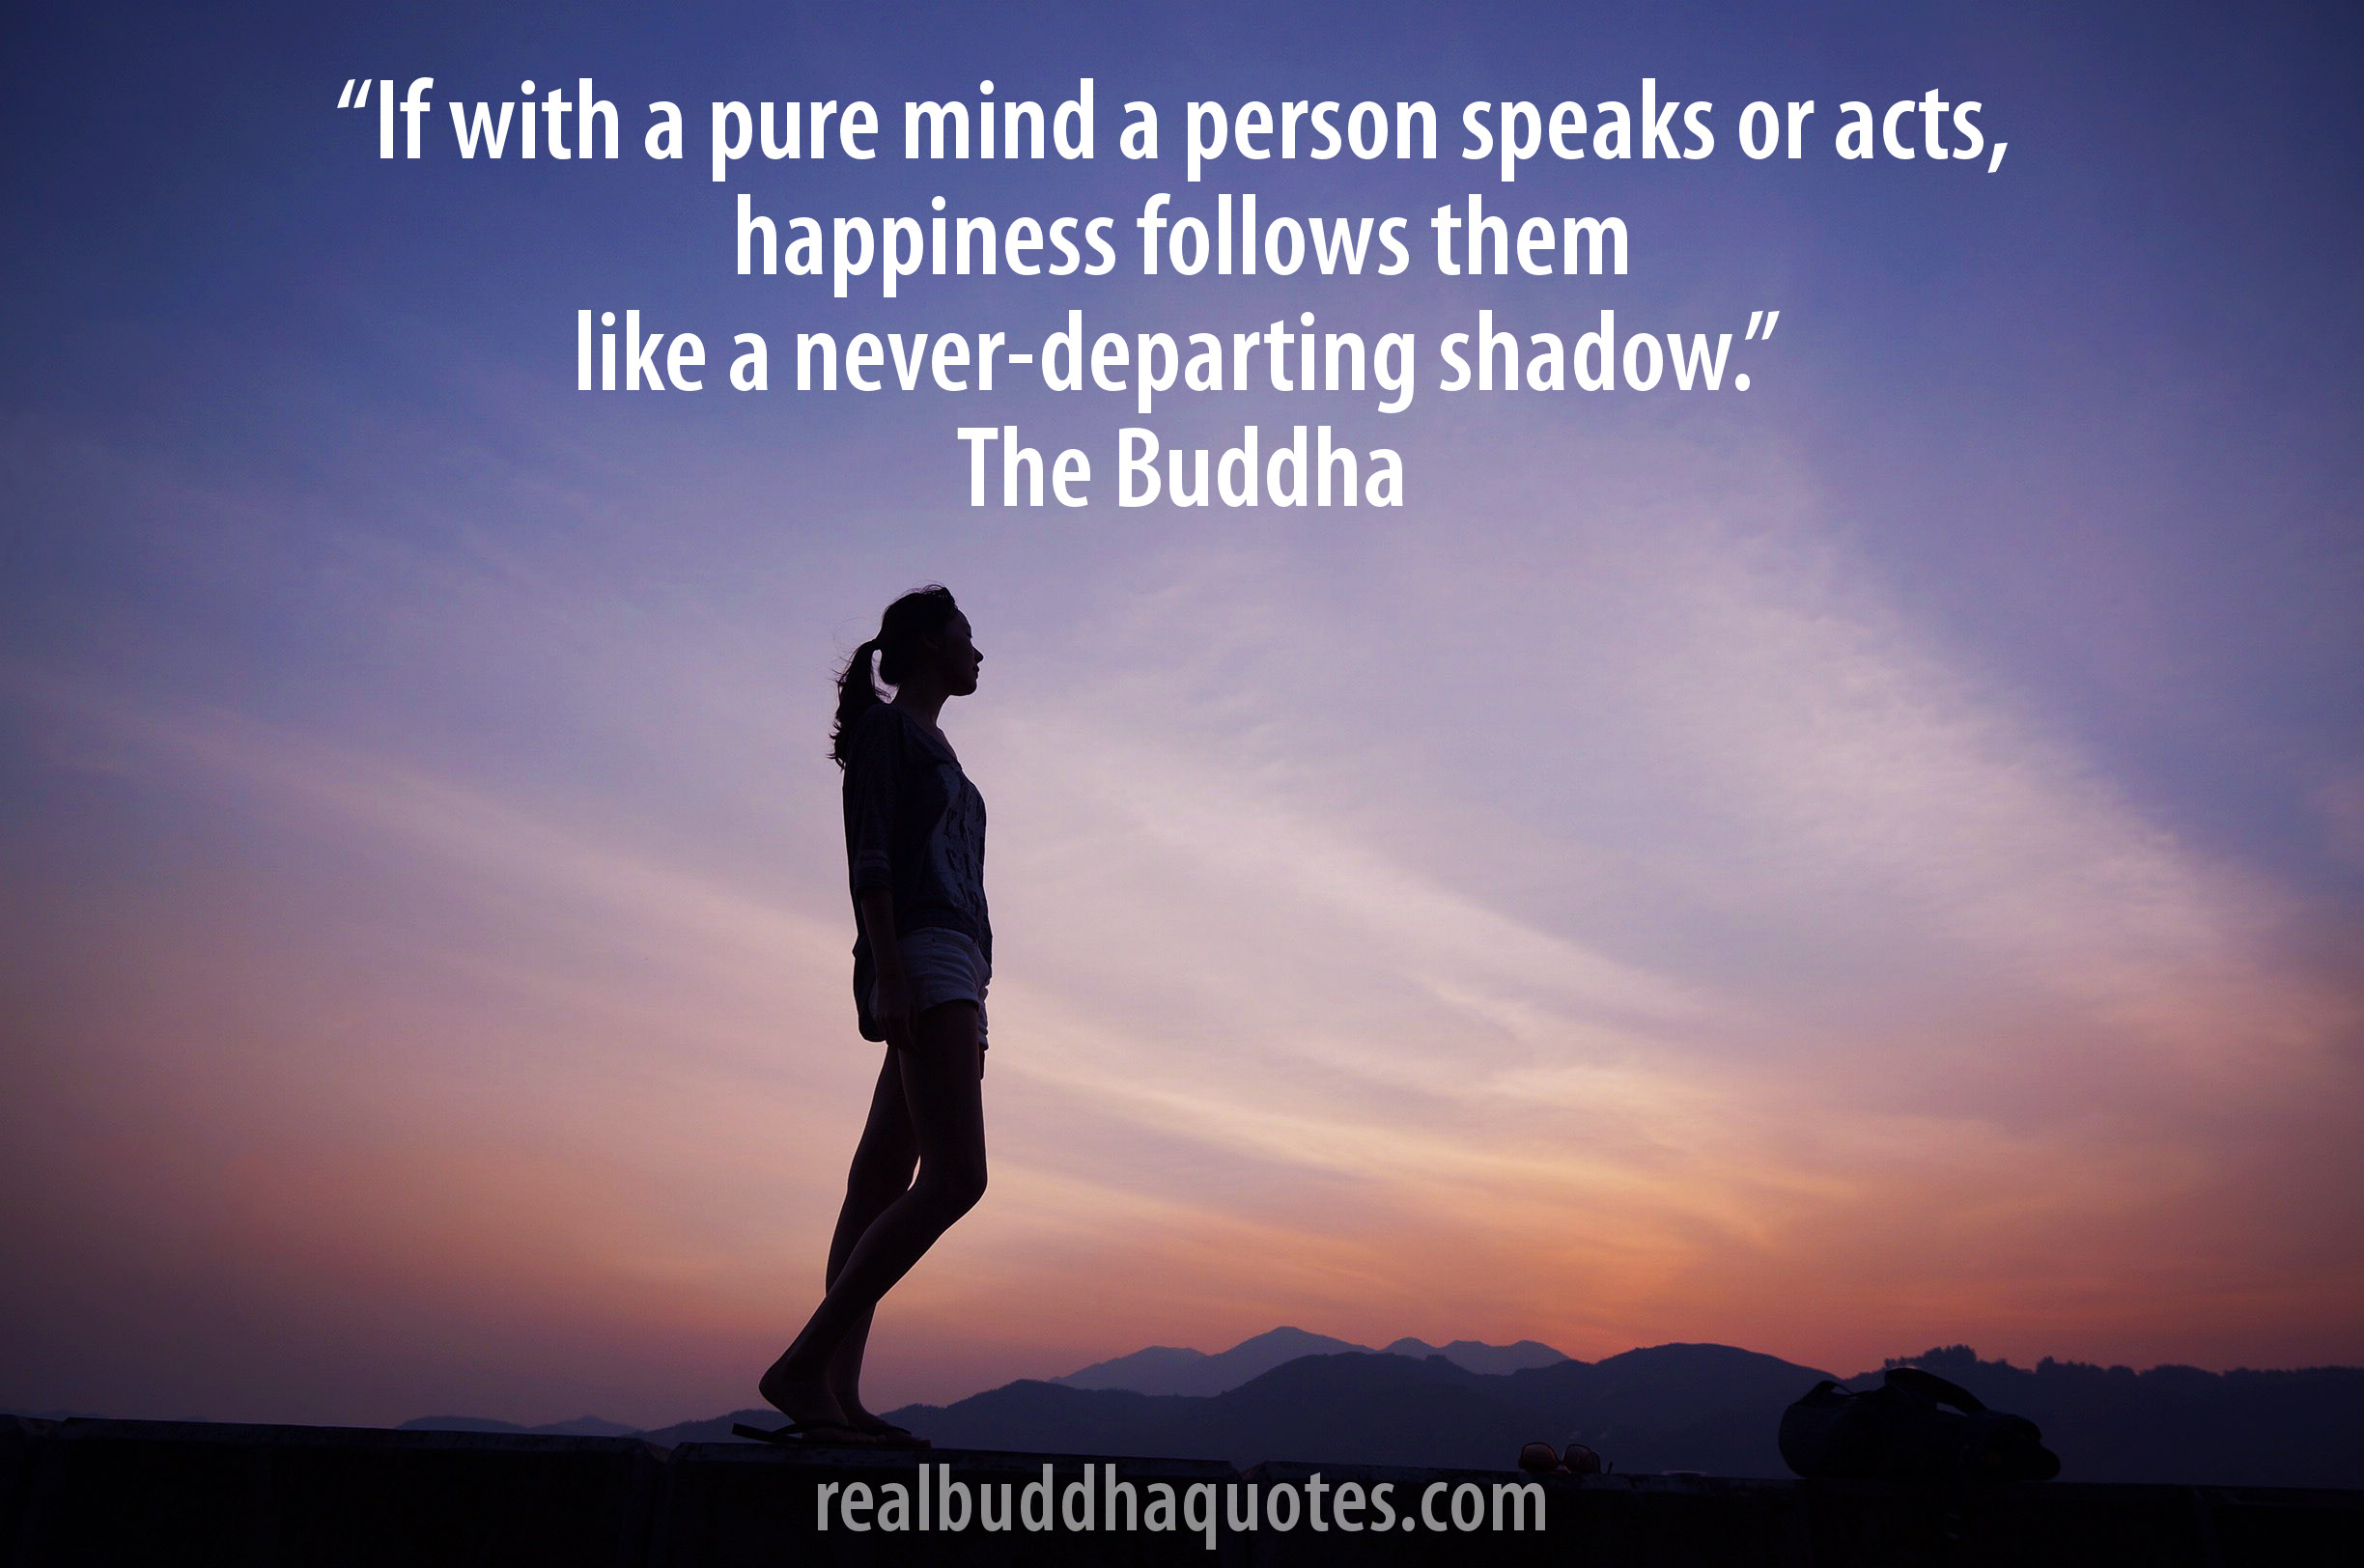 Buddha Quotes On Happiness Real Buddha Quotes  Verified Quotes From The Buddhist Scriptures